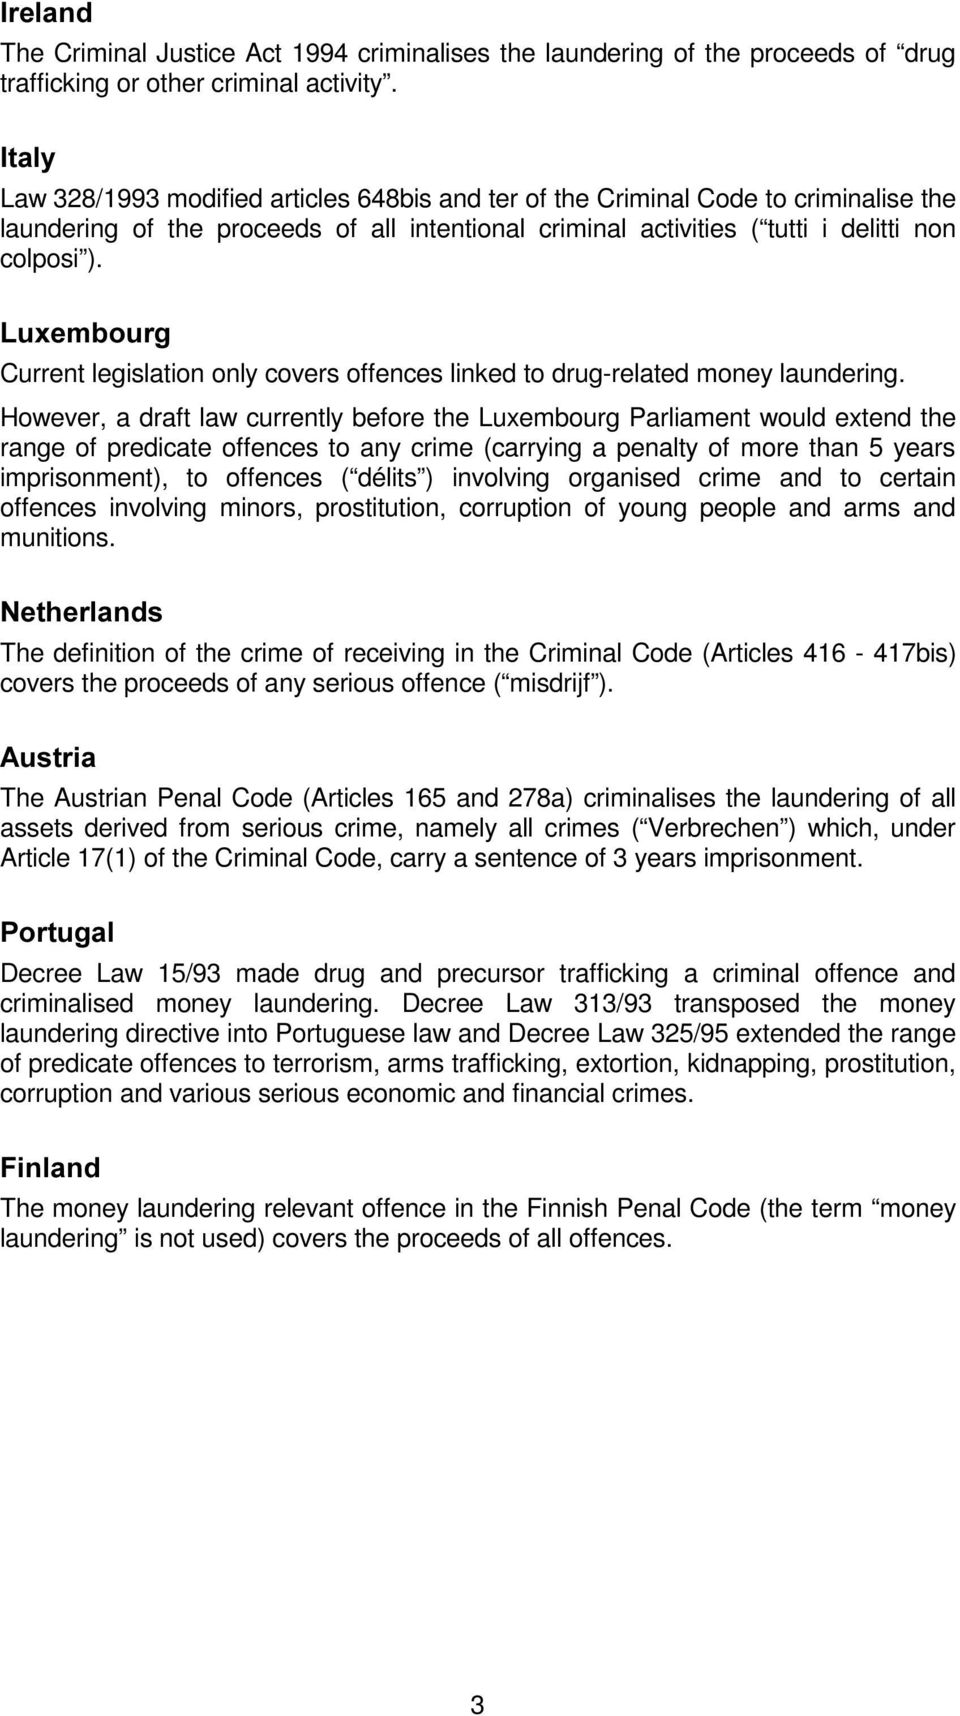 Current legislation only covers offences linked to drug-related money laundering.